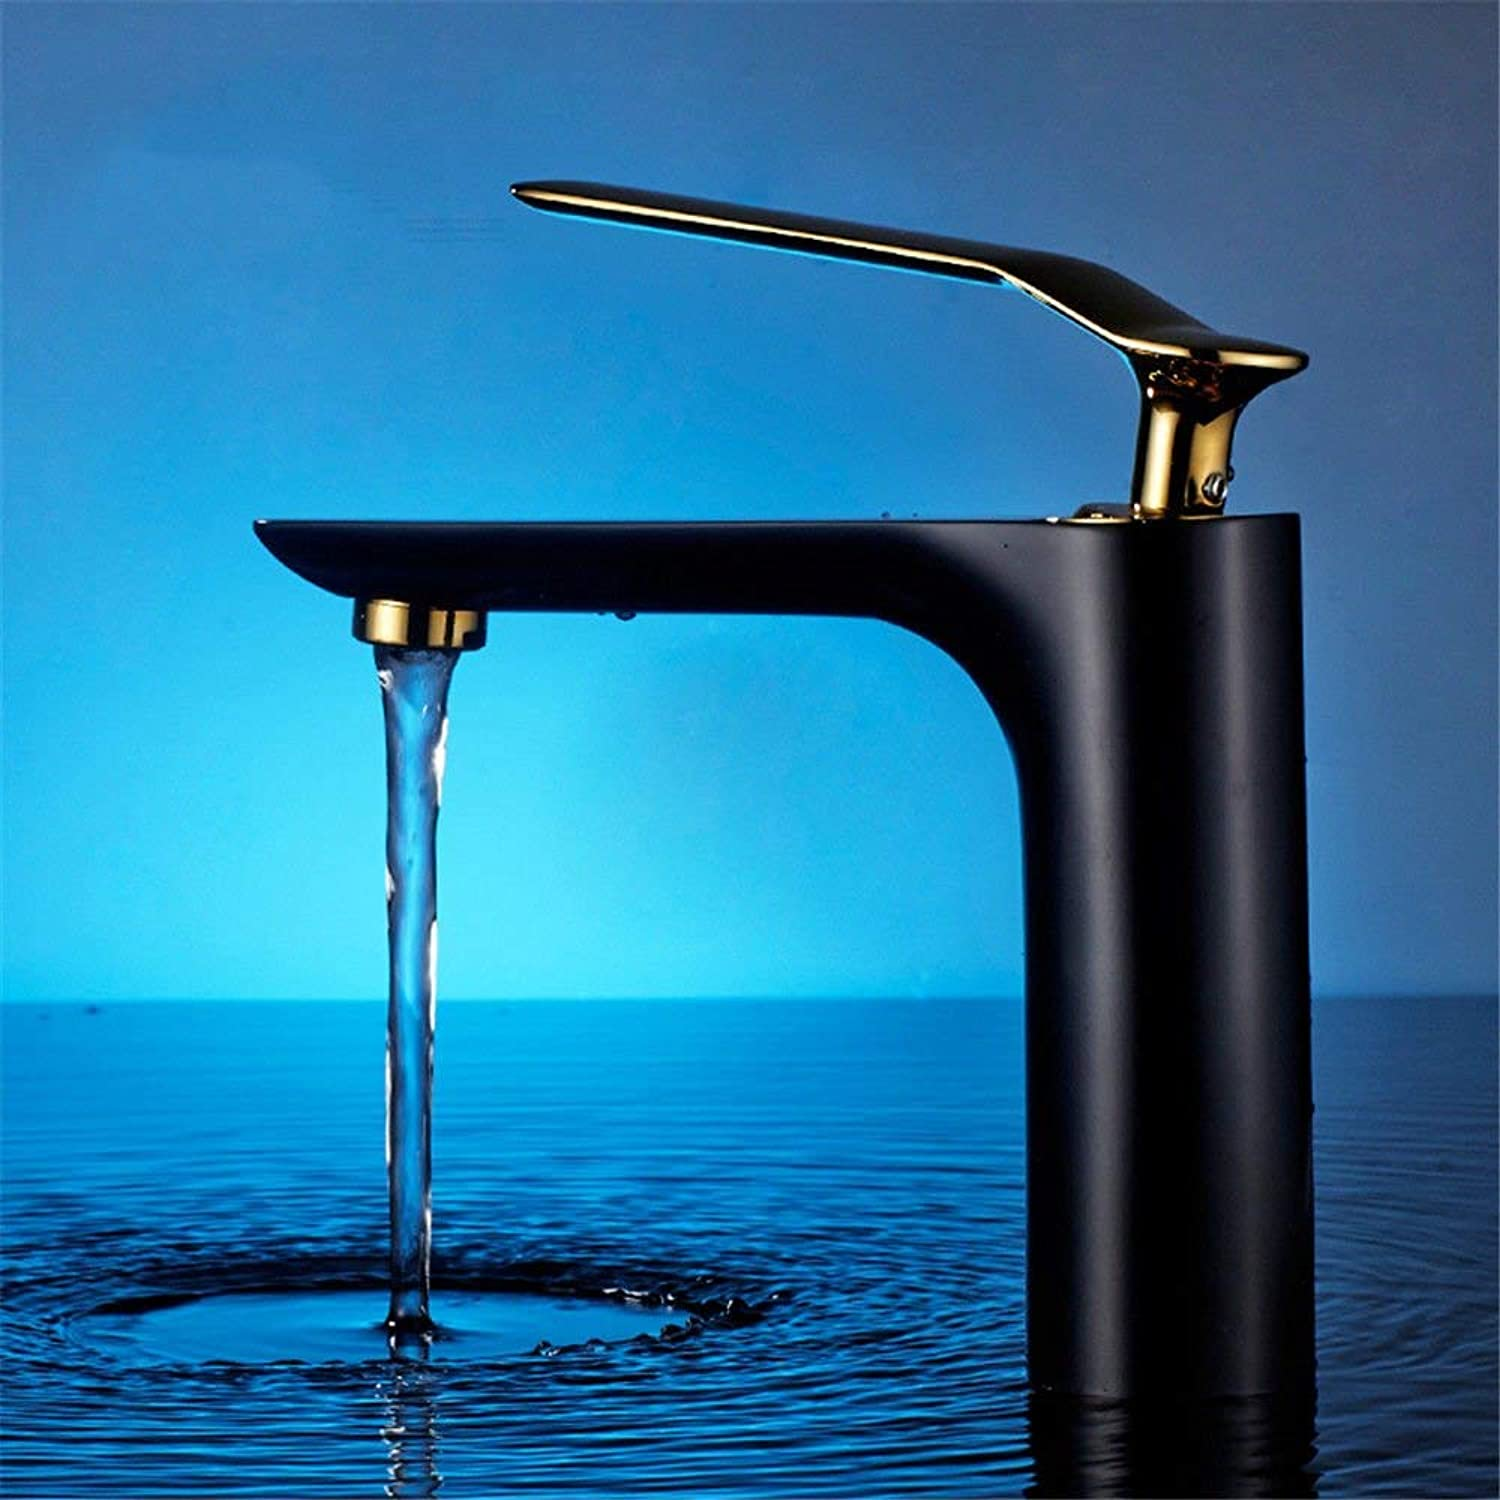 FERZA home Sink Mixer Tap Bathroom Kitchen Basin Water Tap Leakproof Save Water Bathrooms Plated Basin Mixer Single Lever Single Hole Hot And Cold Water D (color   D)